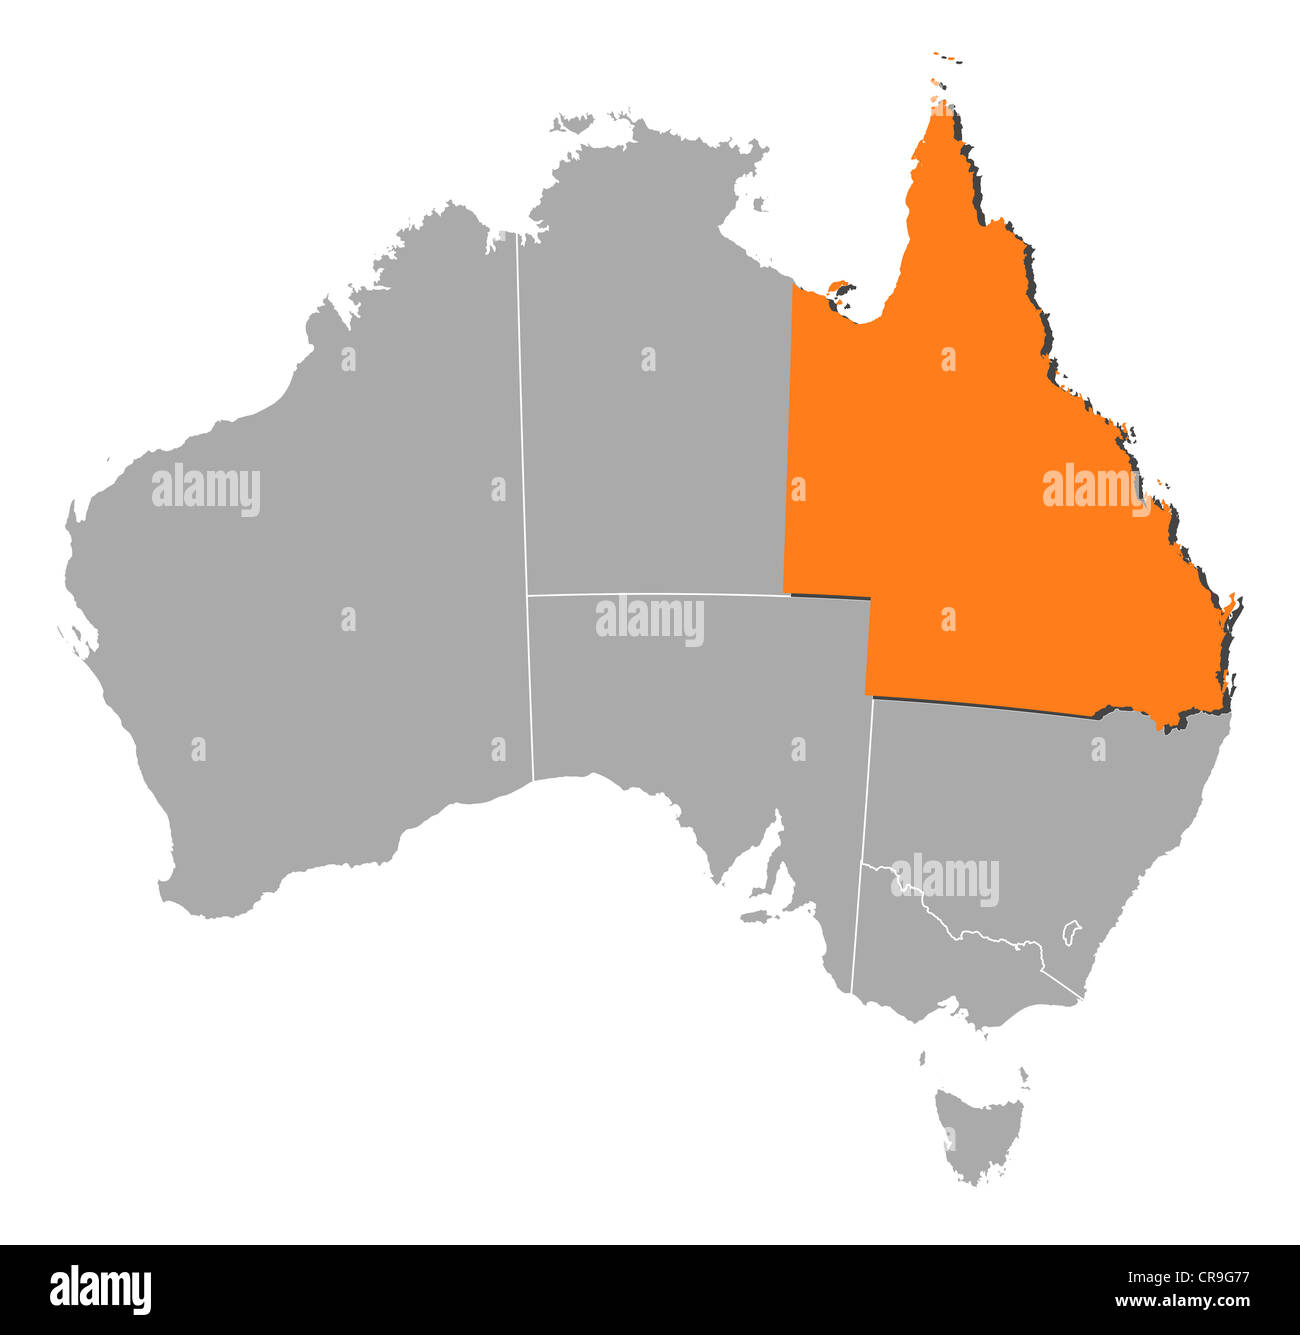 Map Of Australia Showing States.Political Map Of Australia With The Several States Where Queensland